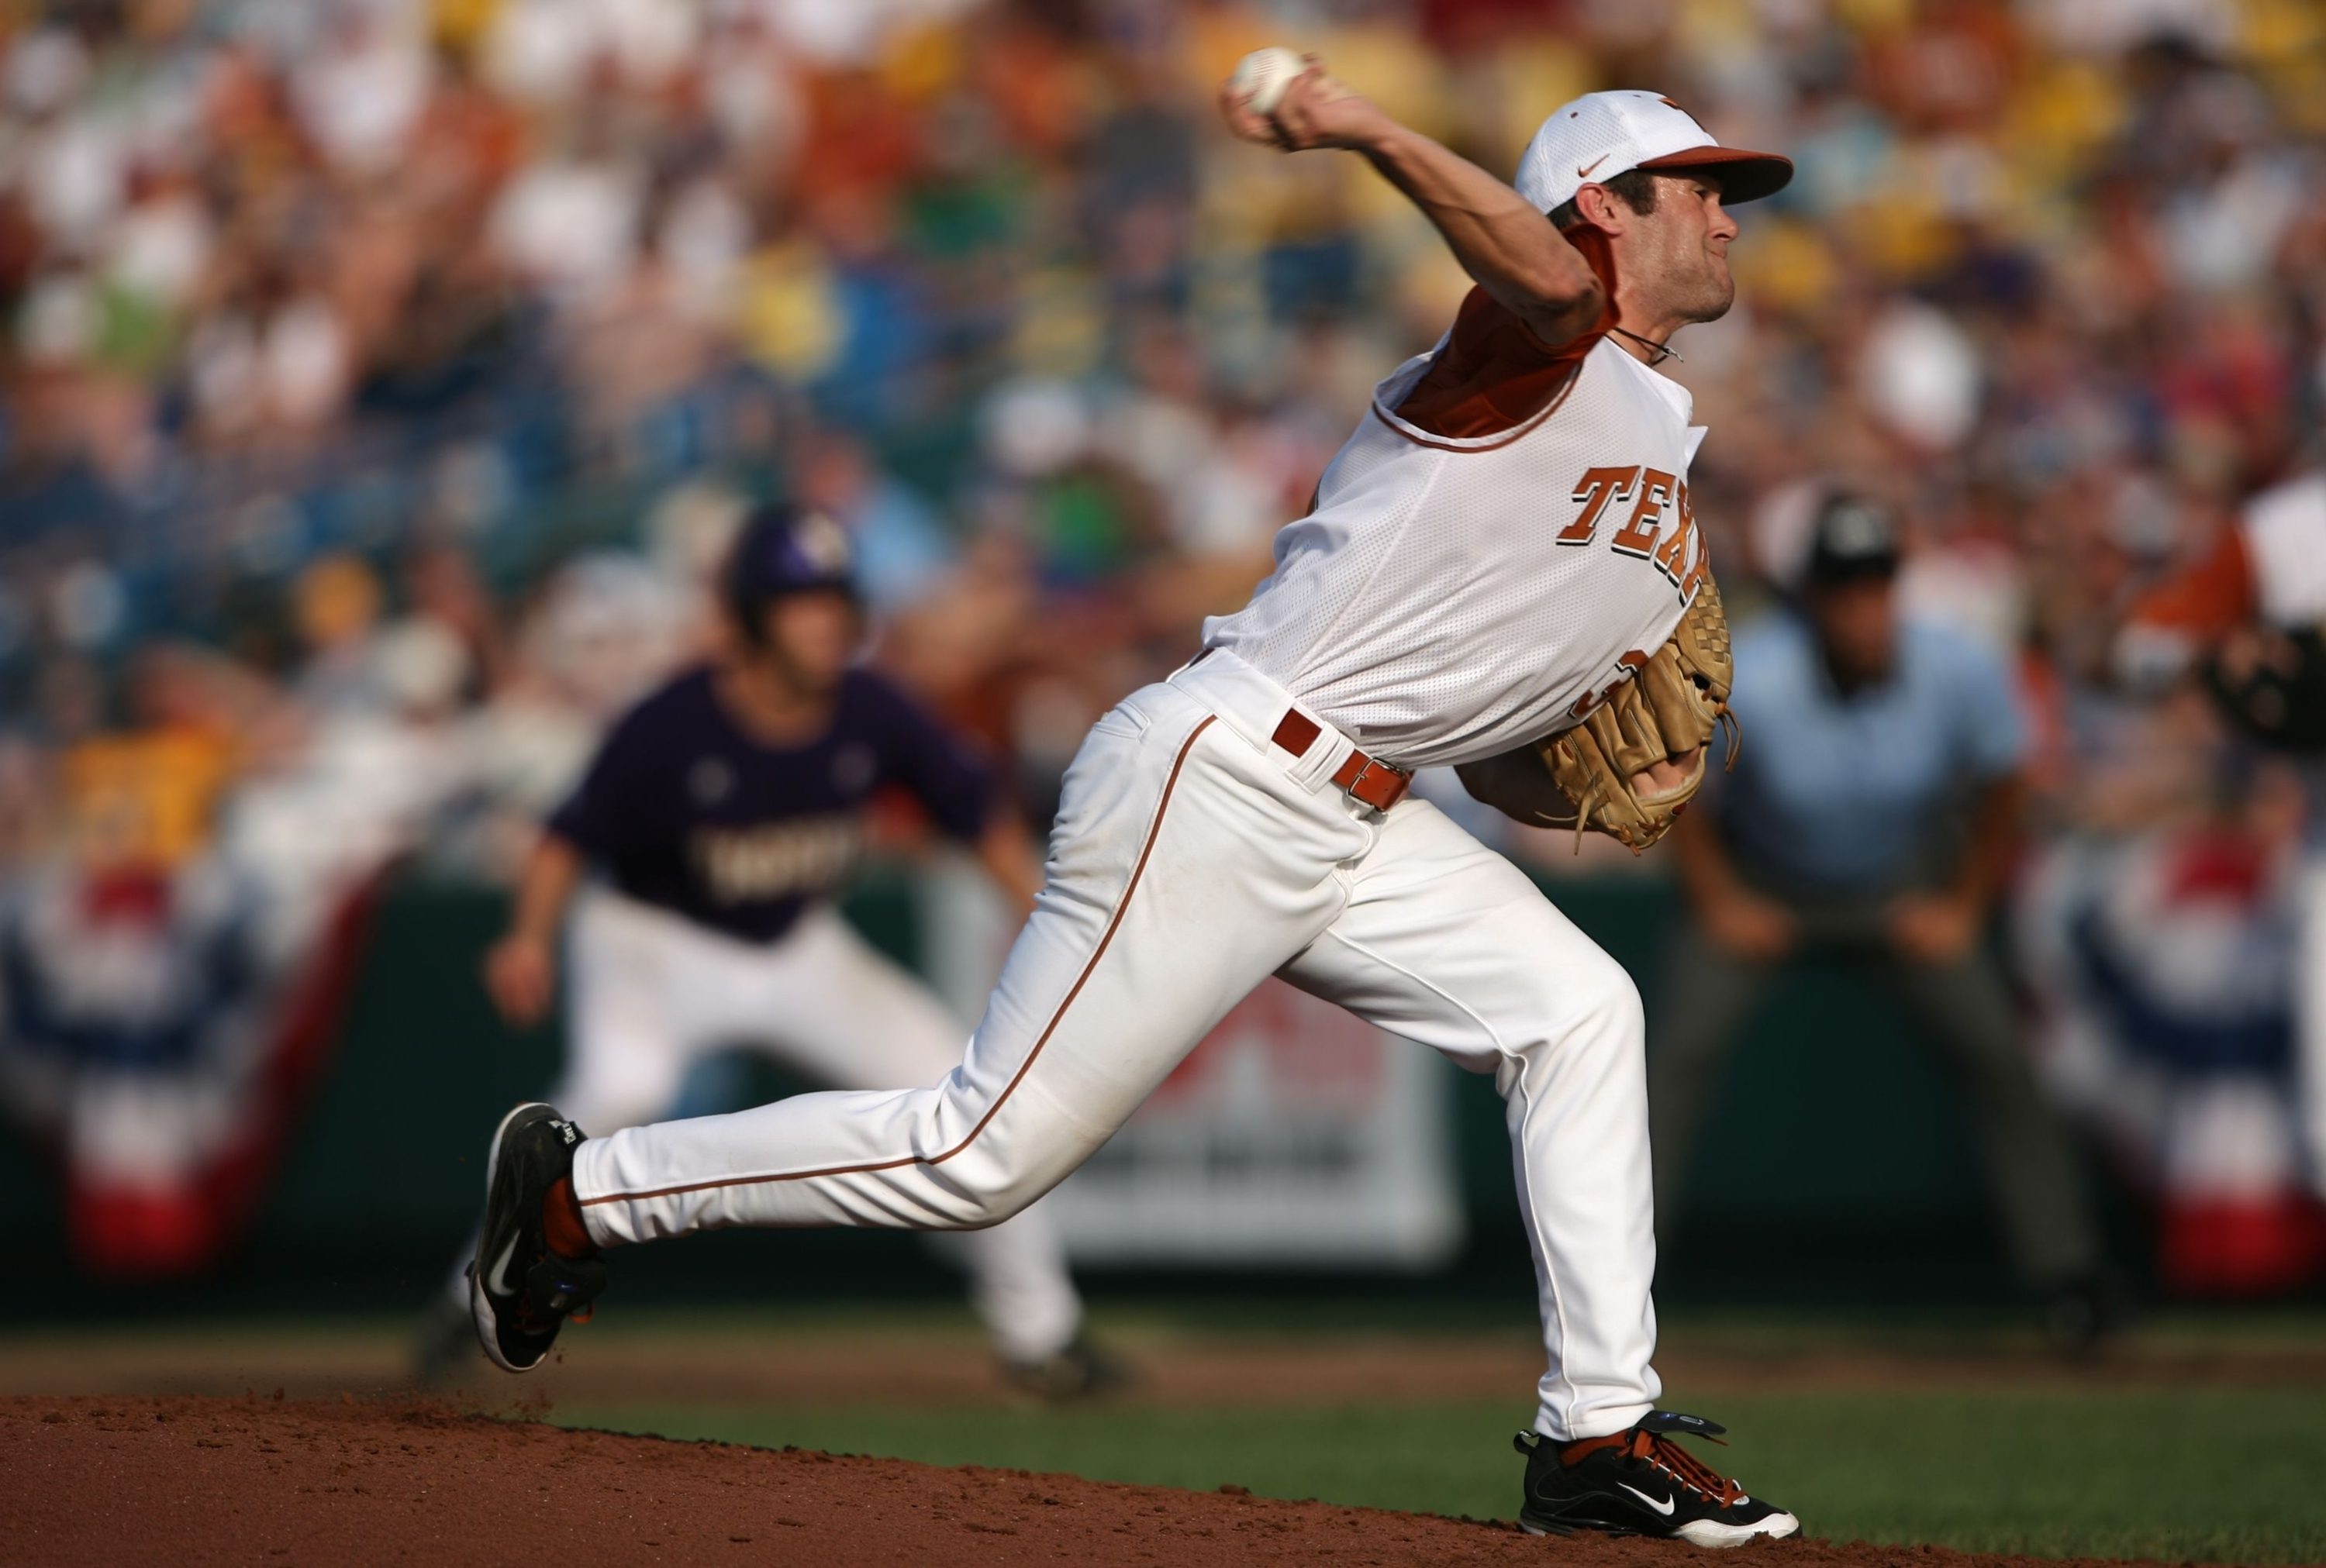 OMAHA, NE - JUNE 22:  Chance Ruffin #31 of the Texas Longhorns pitches with a runner on first base against the Louisiana State University Tigers during Game One of the 2009 NCAA College World Series at Rosenblatt Stadium on June 22, 2009 in Omaha, Nebrask